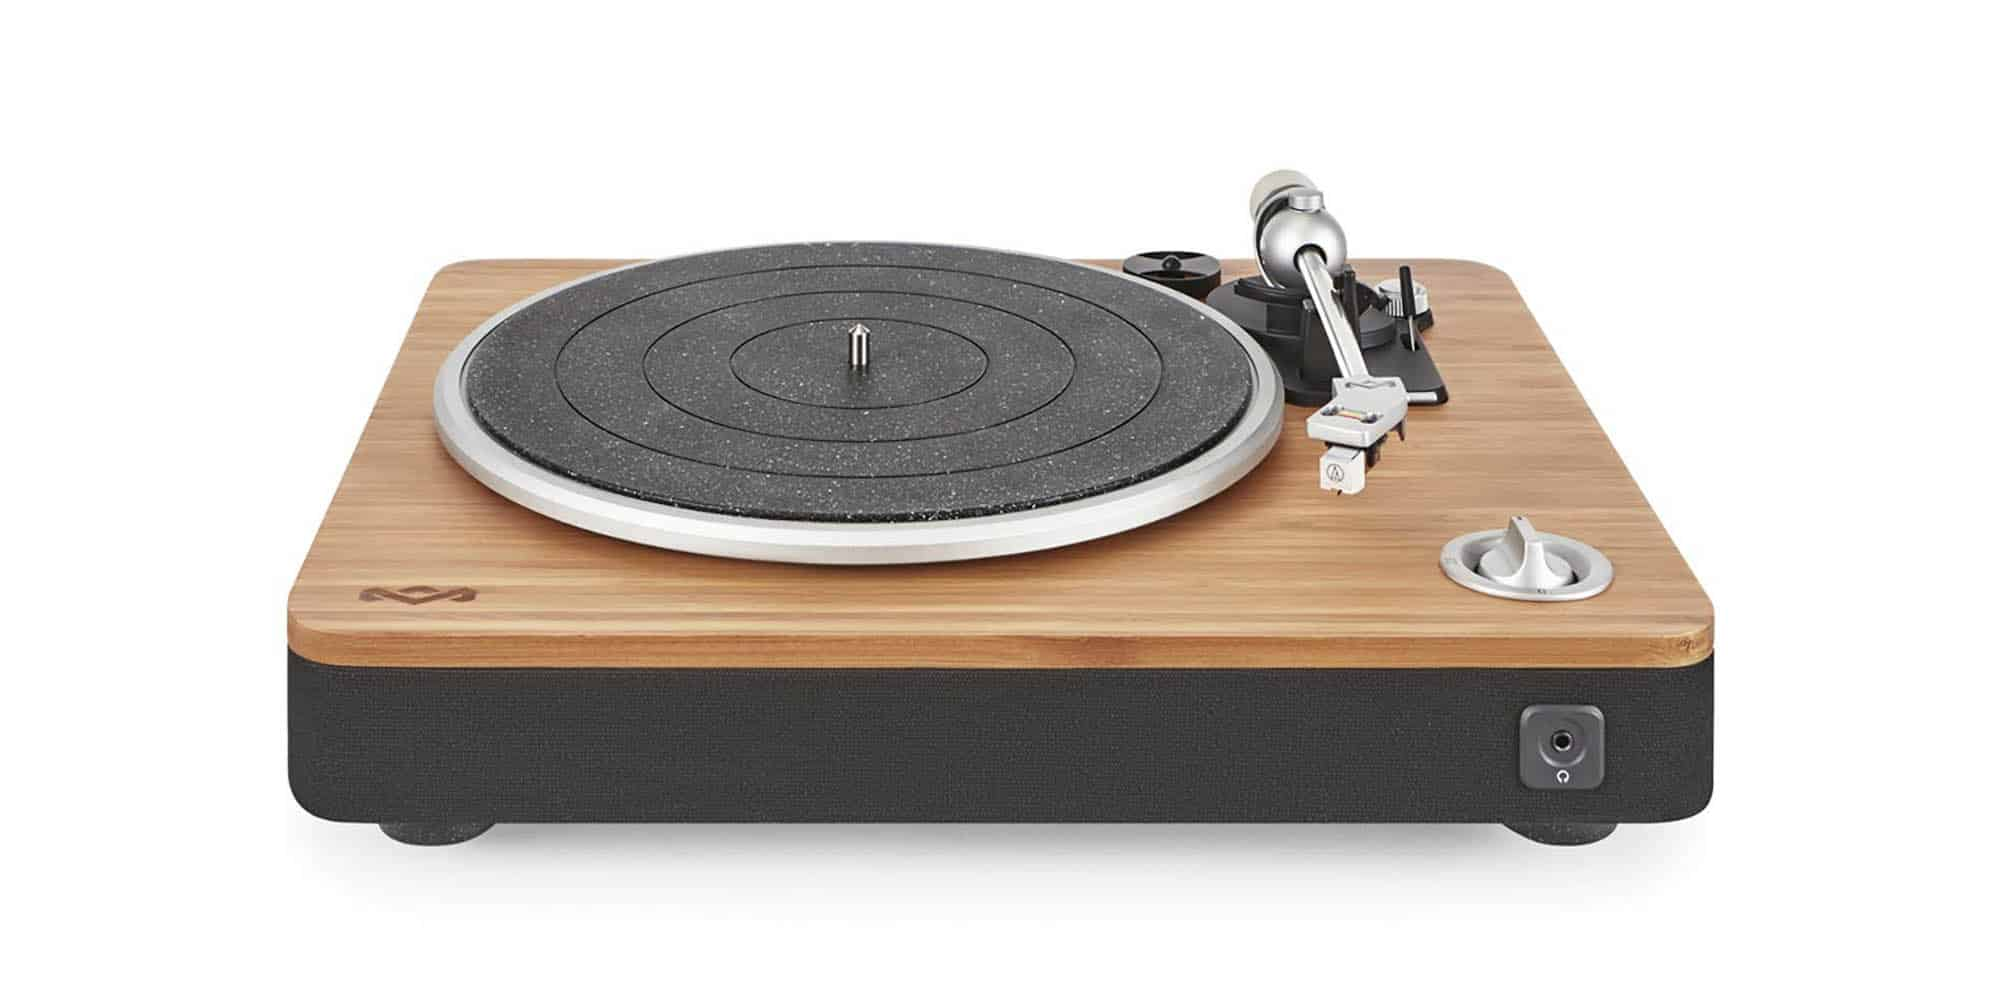 featured image for stir it up turntable review